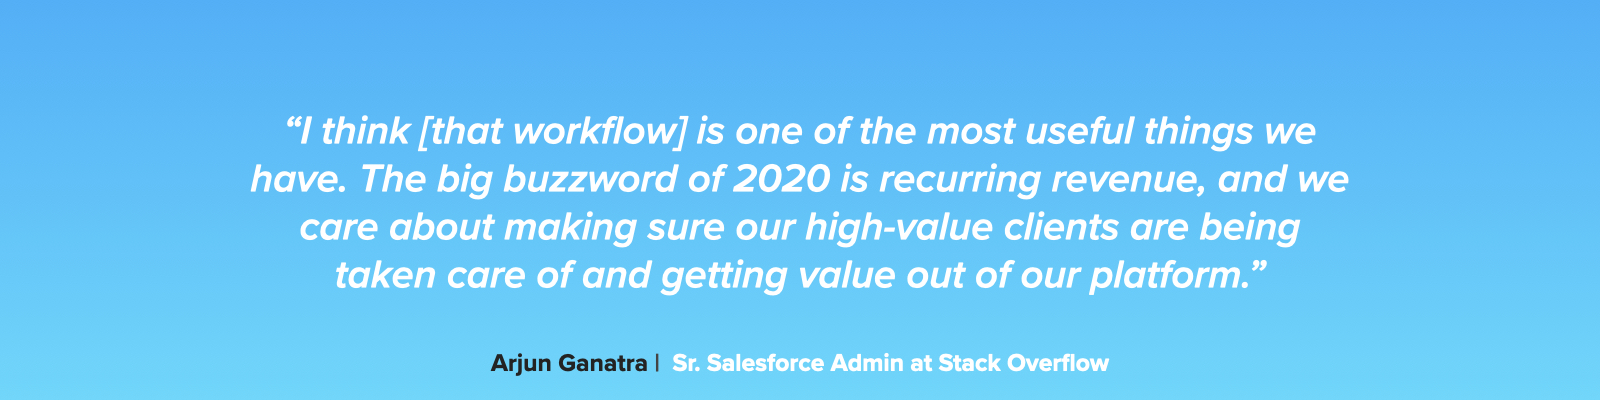 StackOverflow Quote #2.001